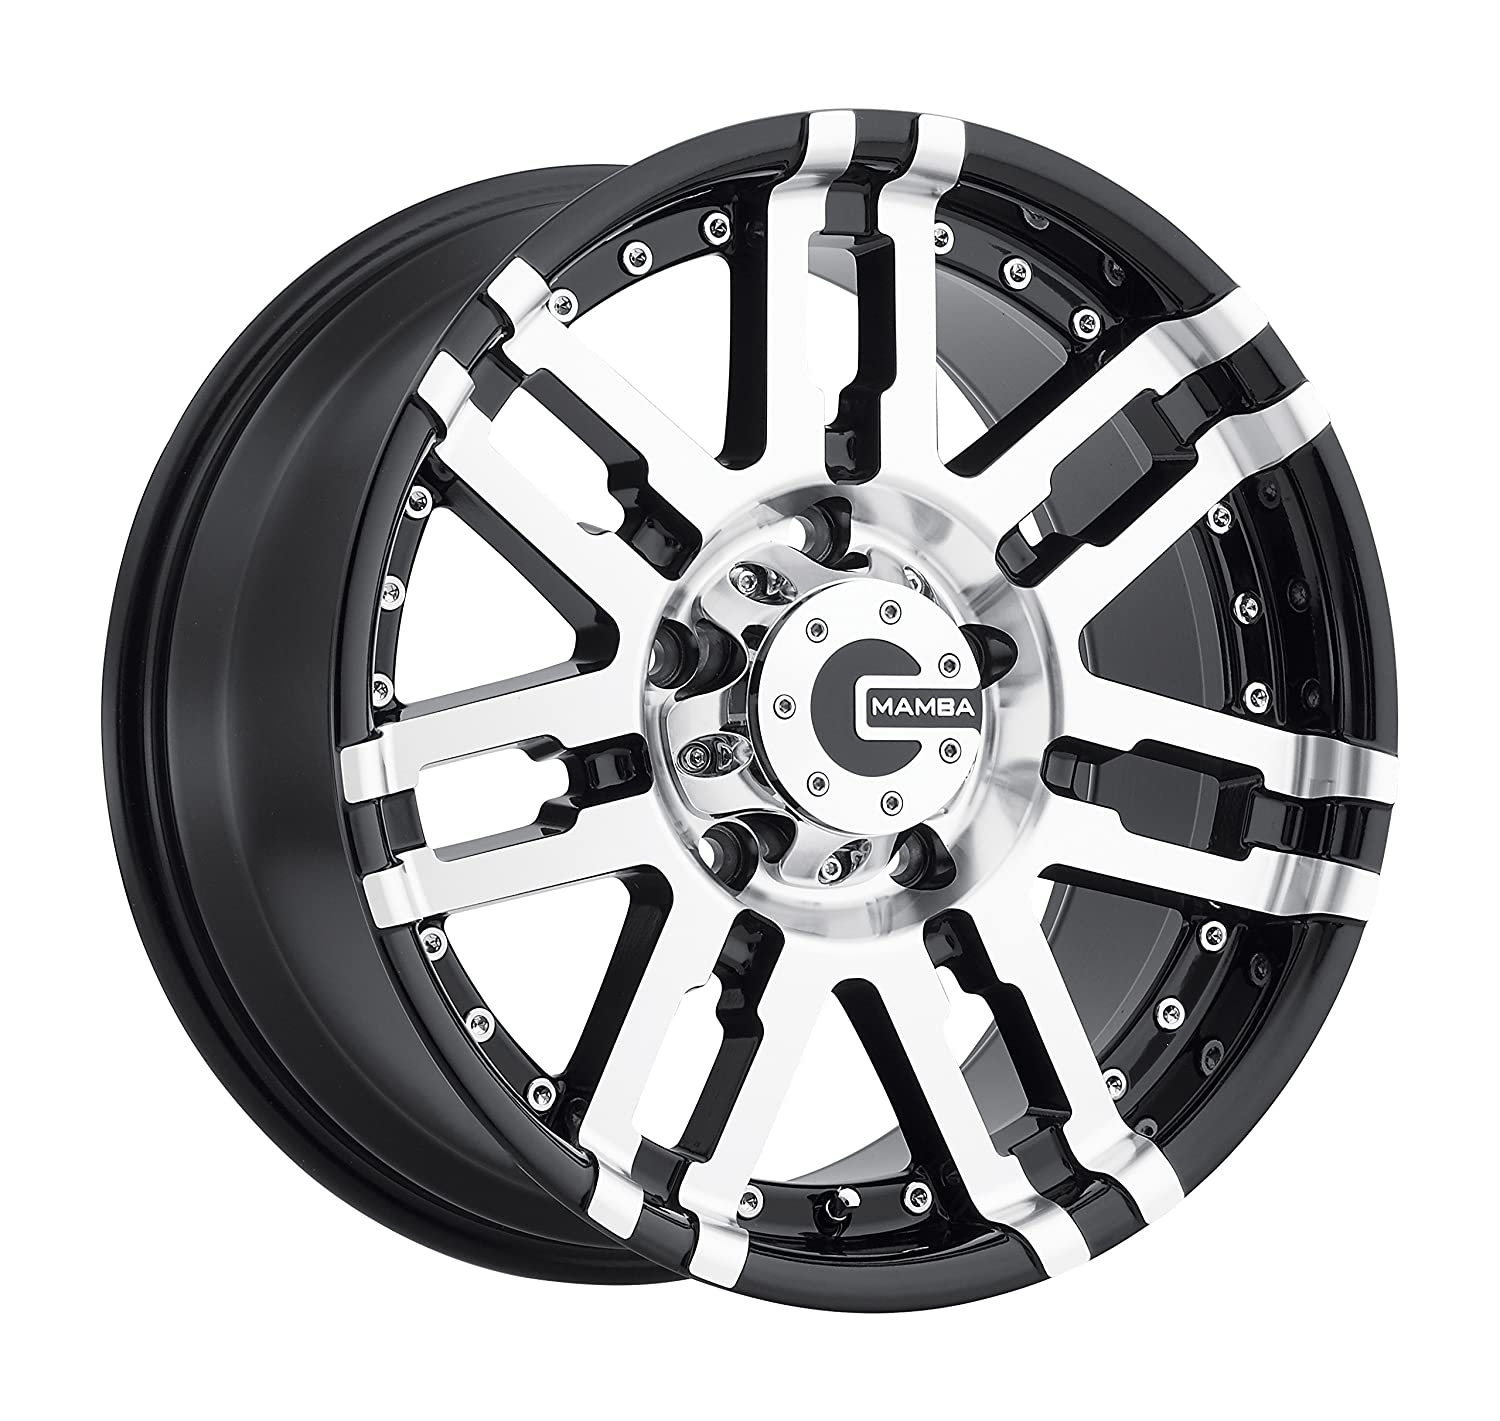 Mamba M2X Gloss Black Wheel with Painted Machined Finish 18 x 9. inches //5 x 139 mm, 19 mm Offset